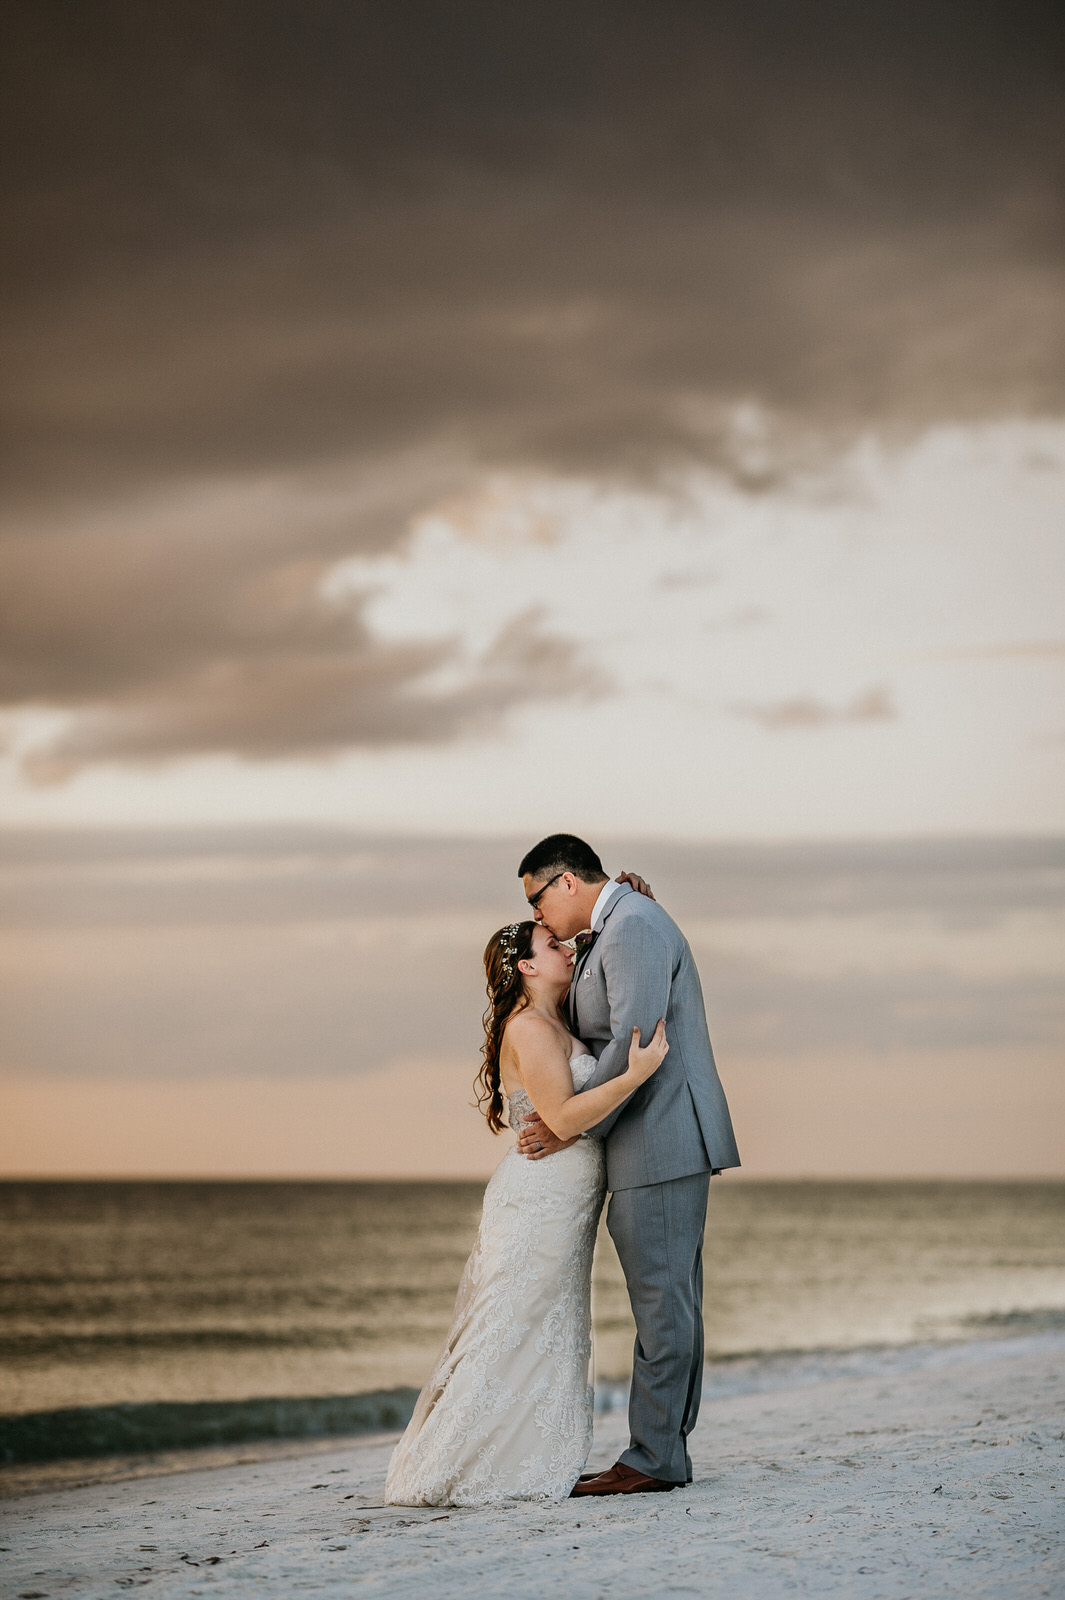 Mcneile_Photography_Wedding51.jpg